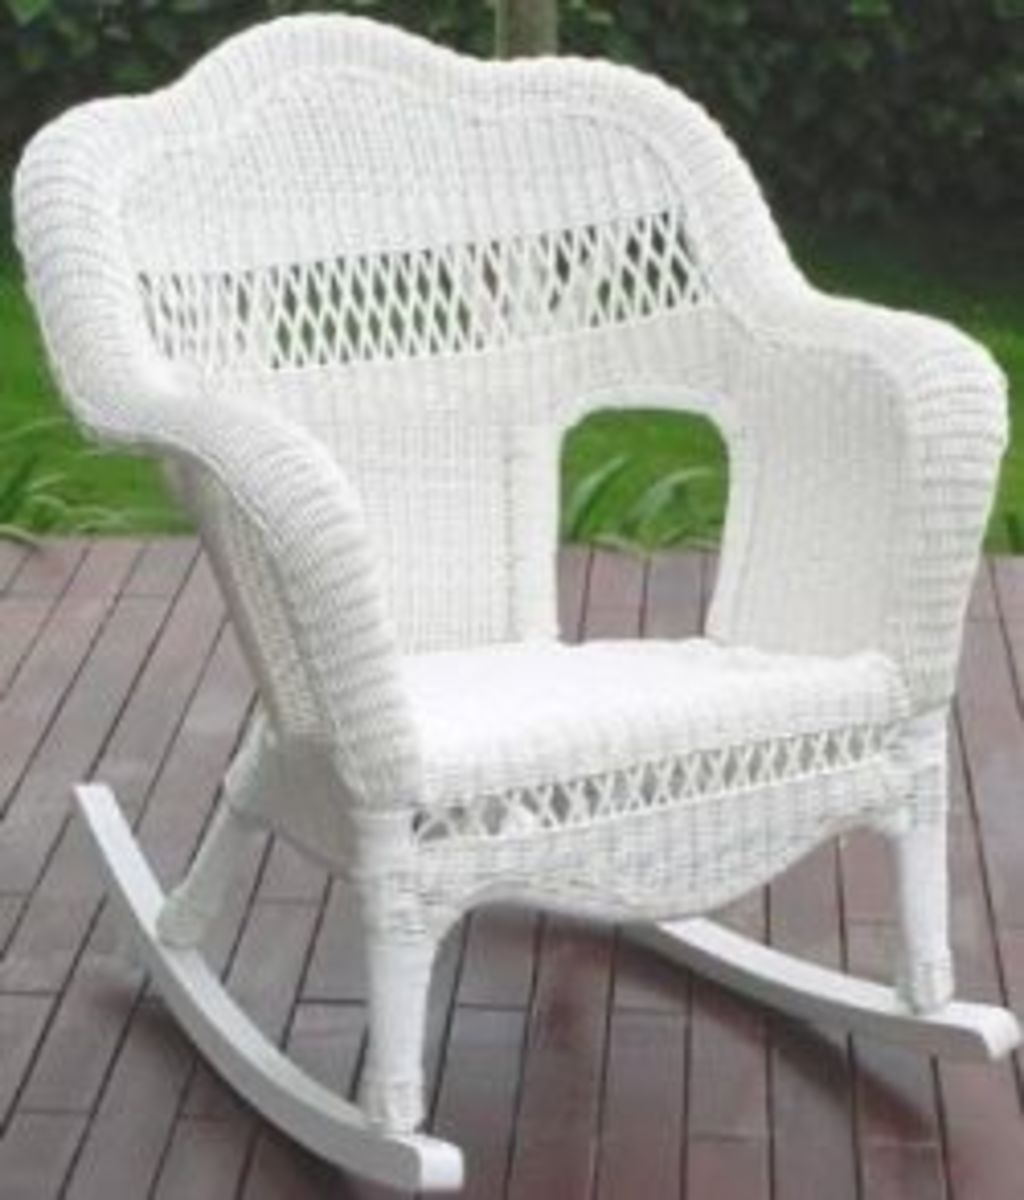 How to restore wicker furniture hubpages for Recover wicker furniture